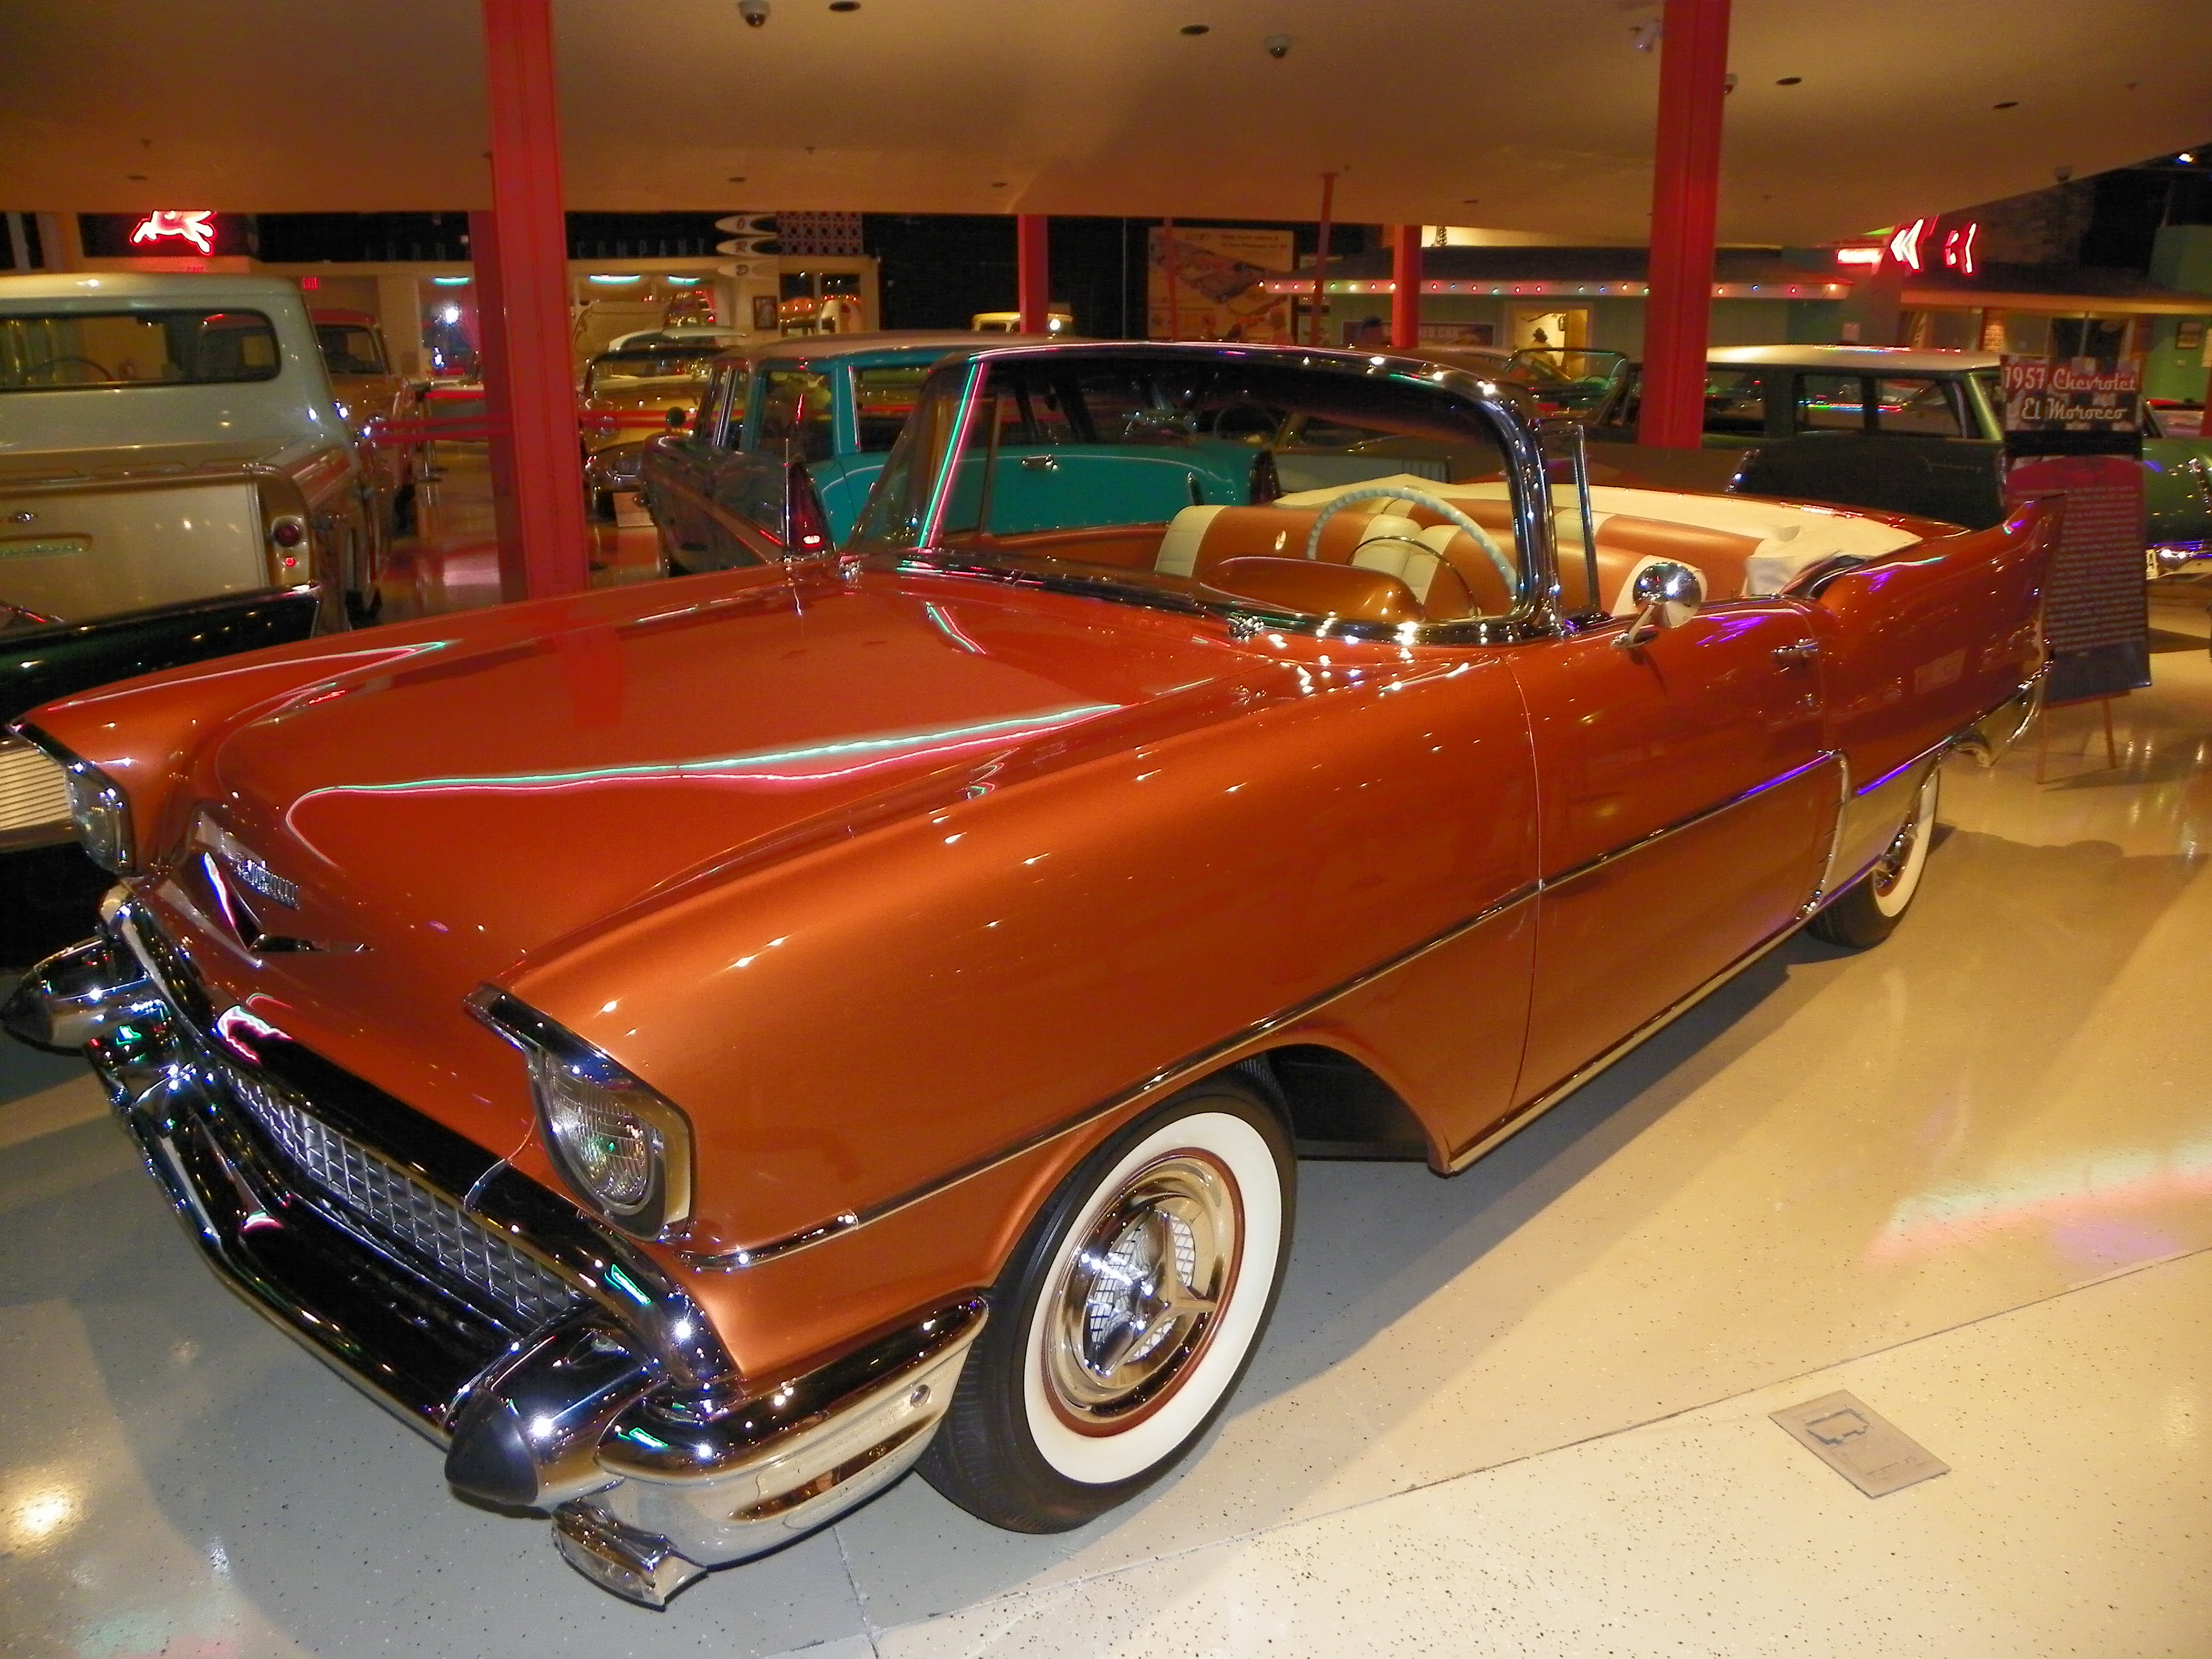 1957 Model of luxury roadster-Chevrolet El Morocco, convertible retro car